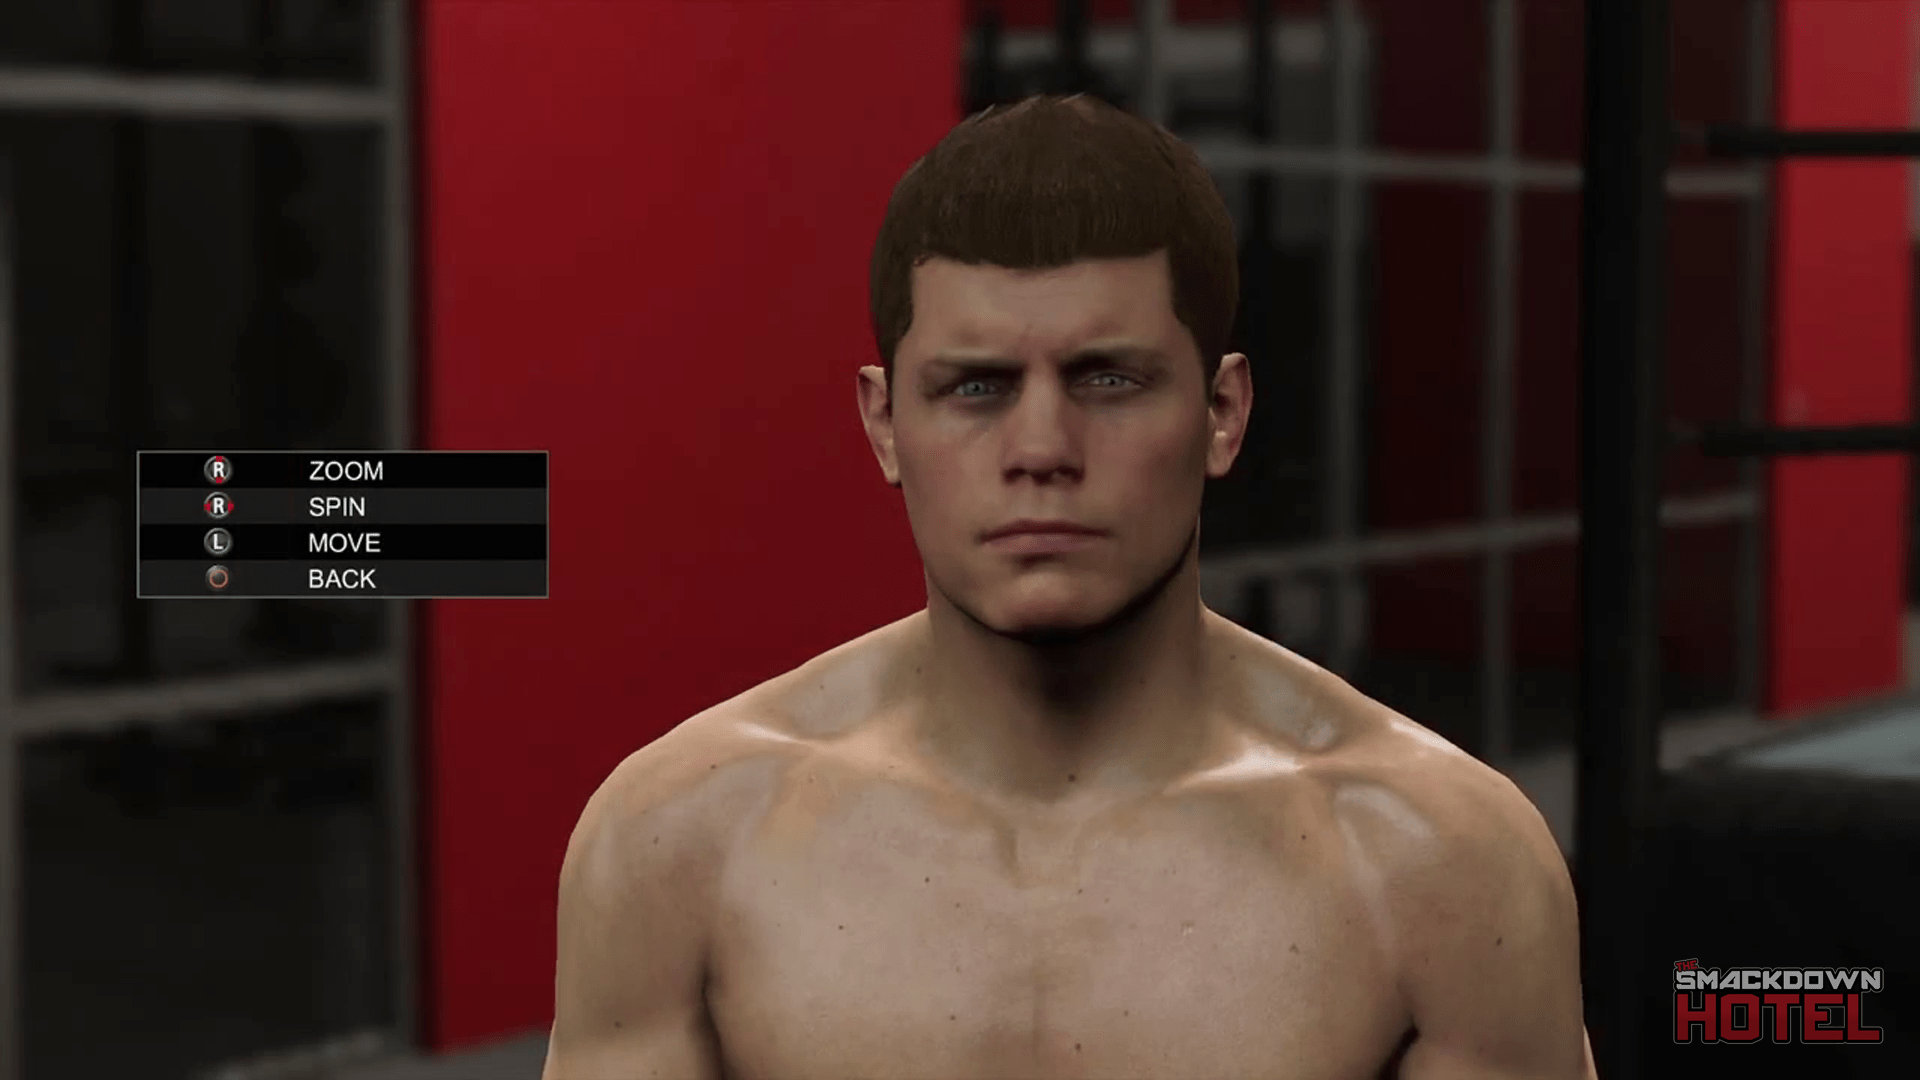 Cody Rhodes WWE 2K15 Roster